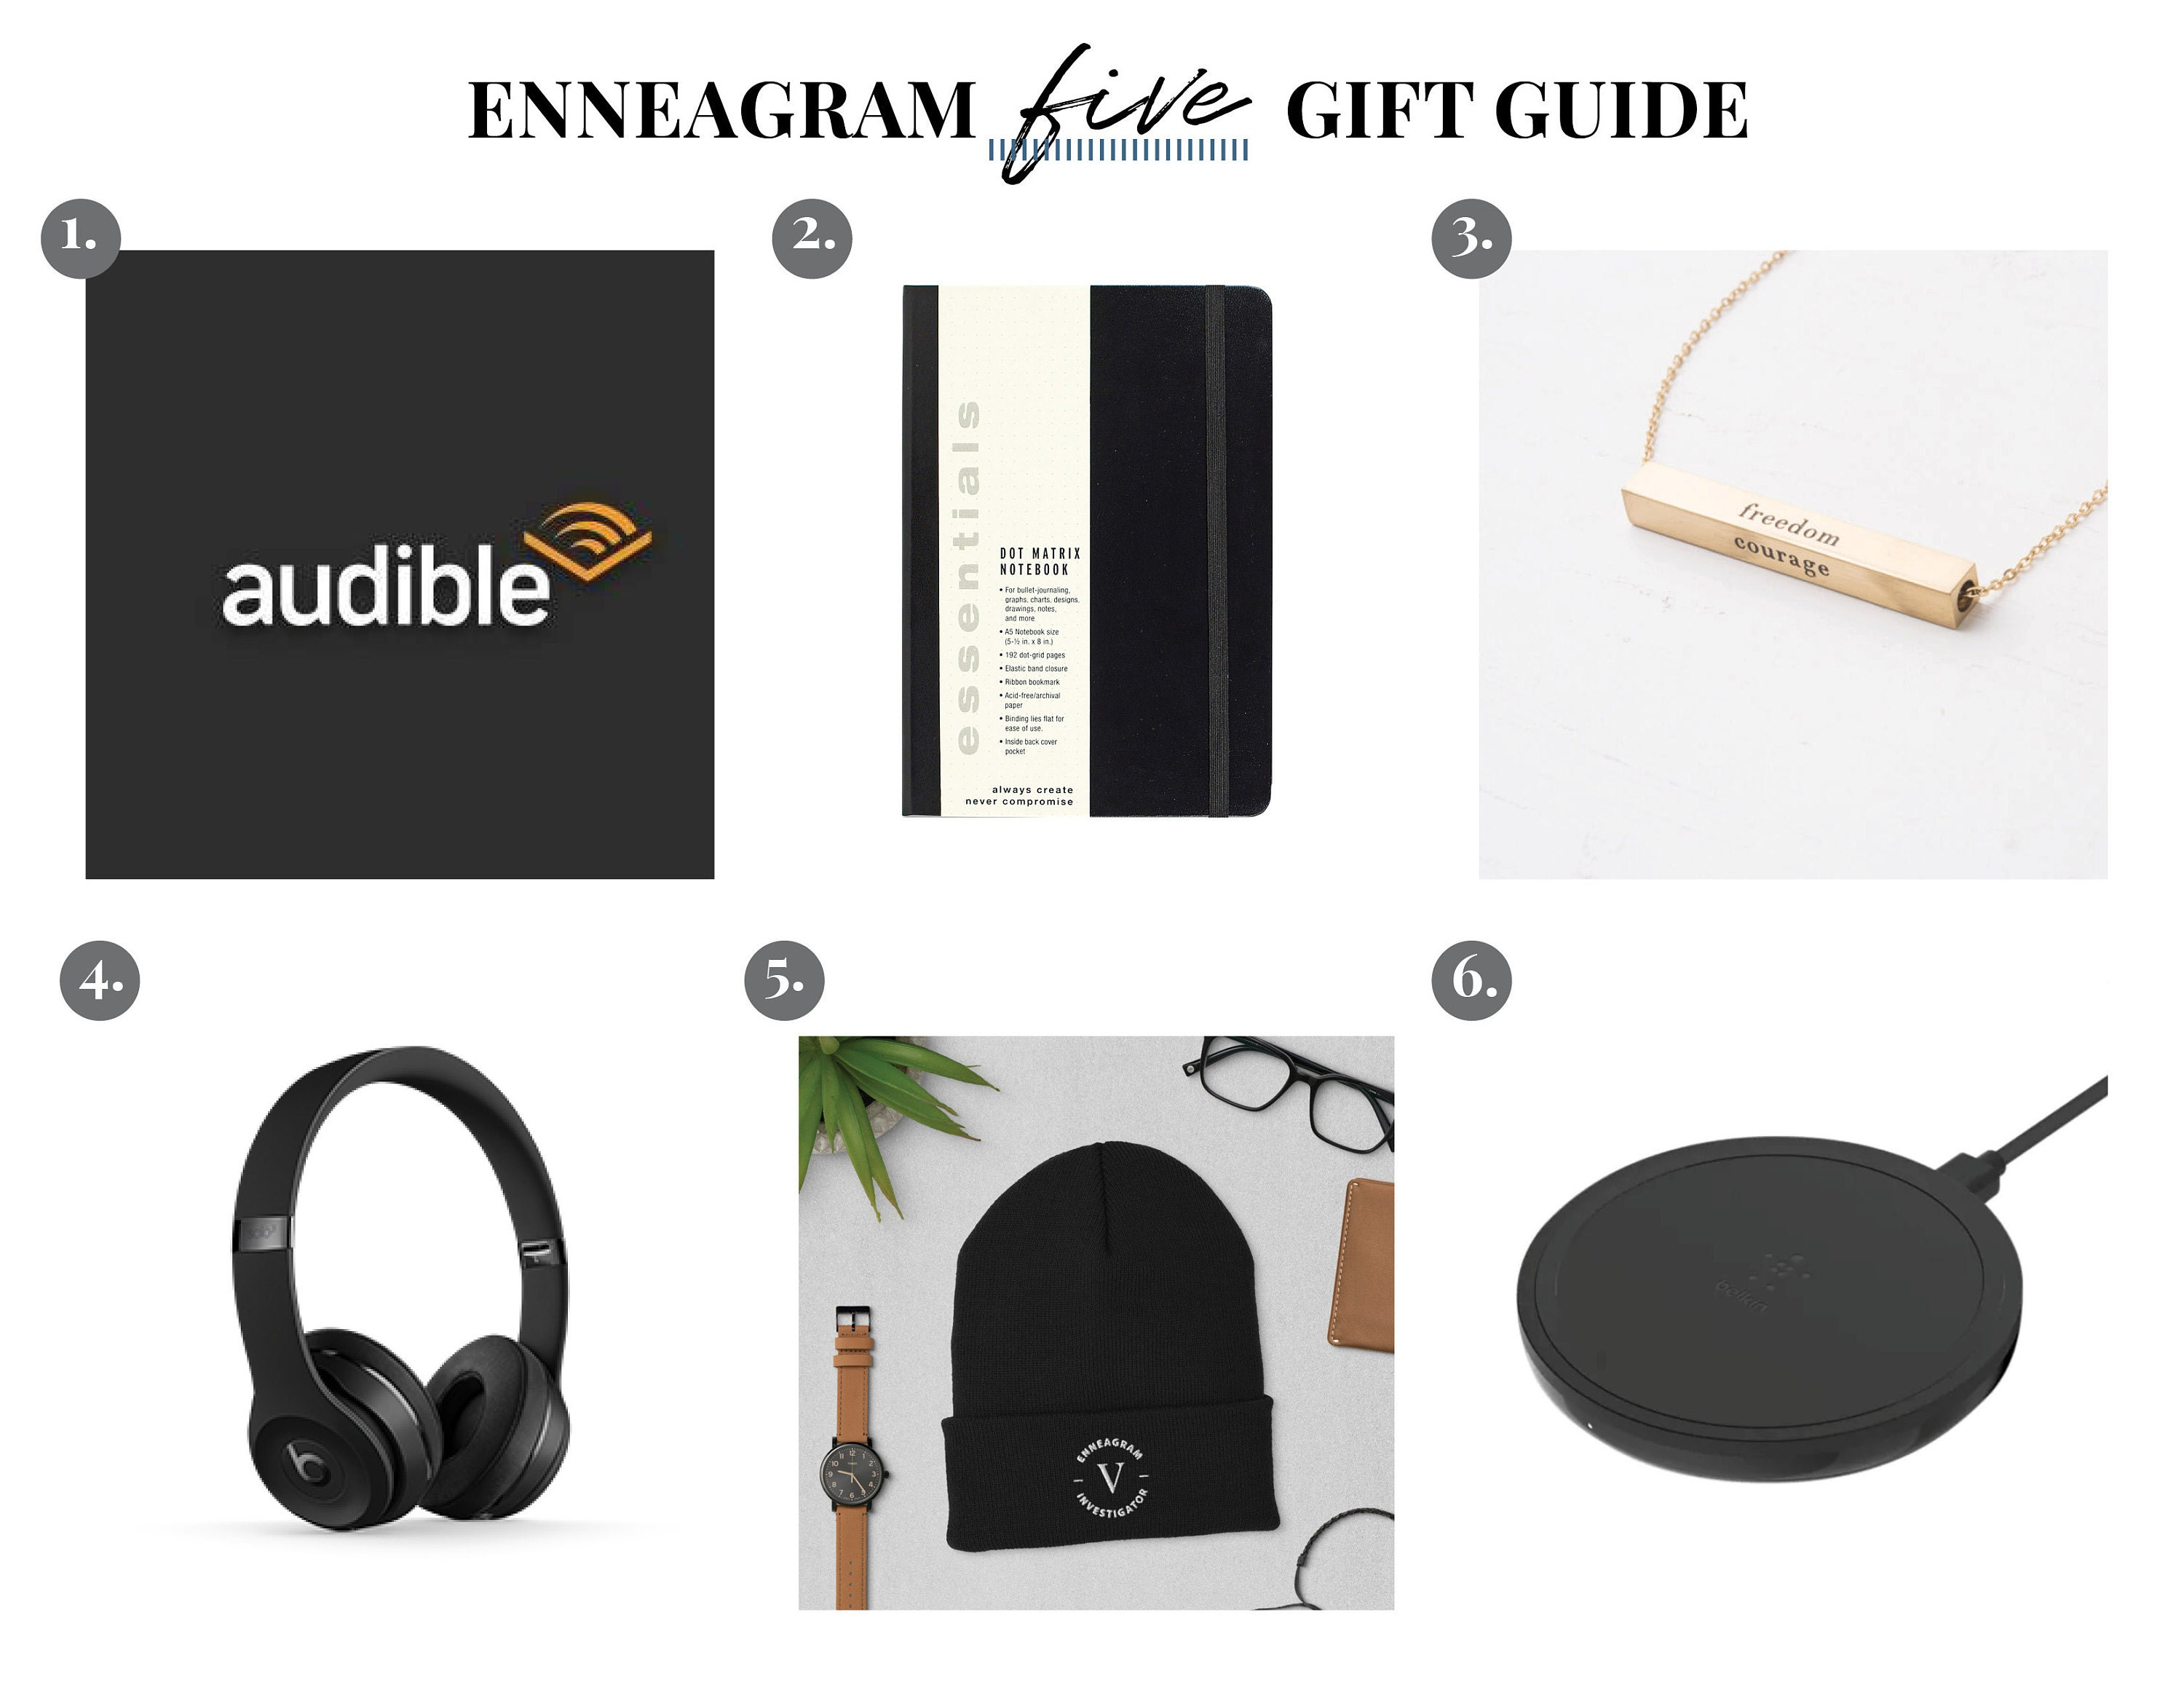 Enneagram Five Gift Guide